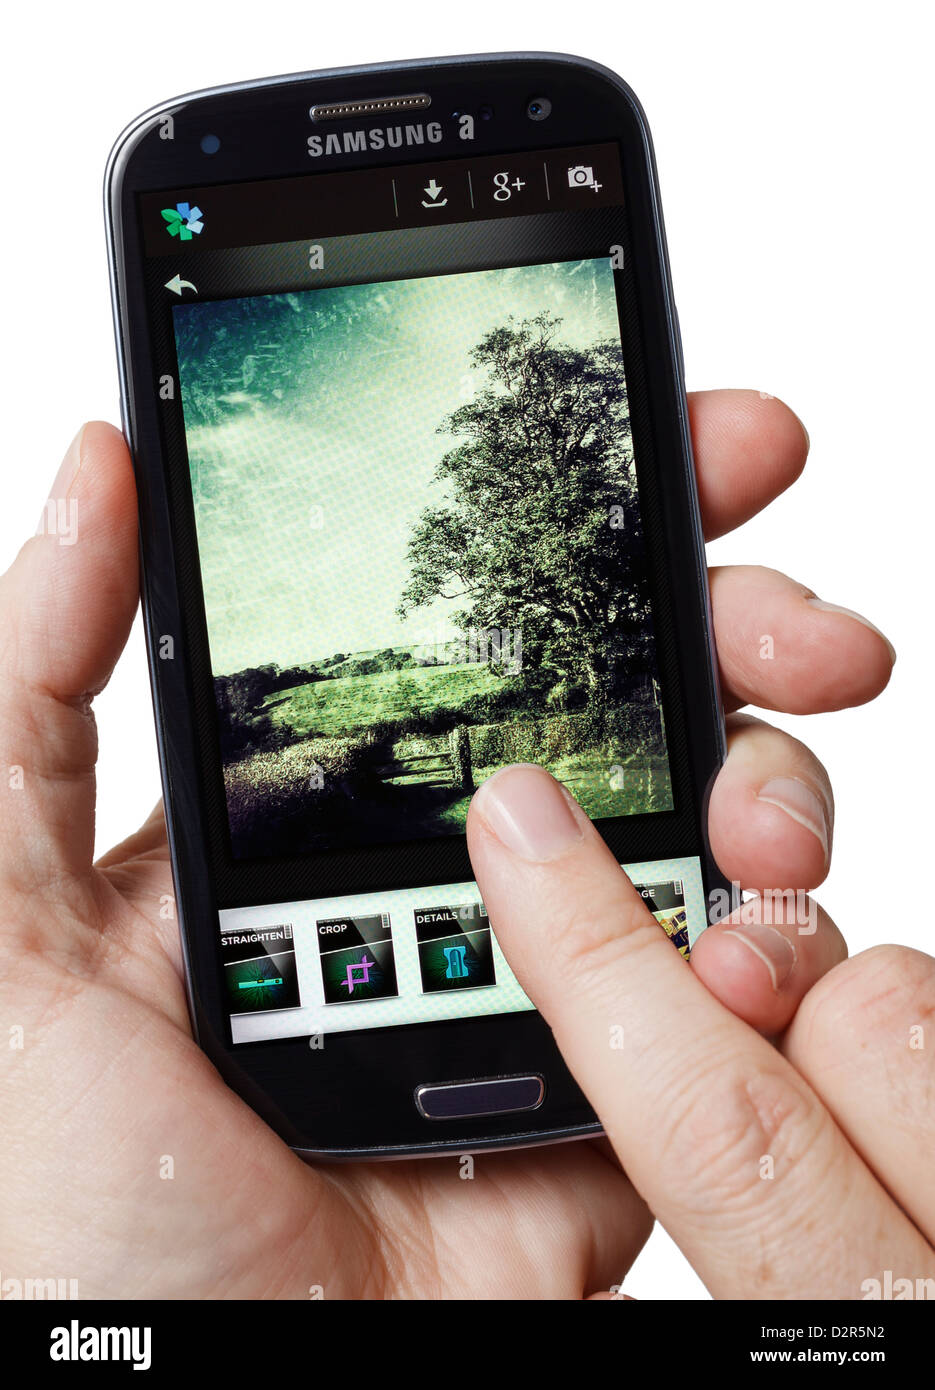 Using a photo manipulation app on a smartphone smart phone mobile phone - Stock Image